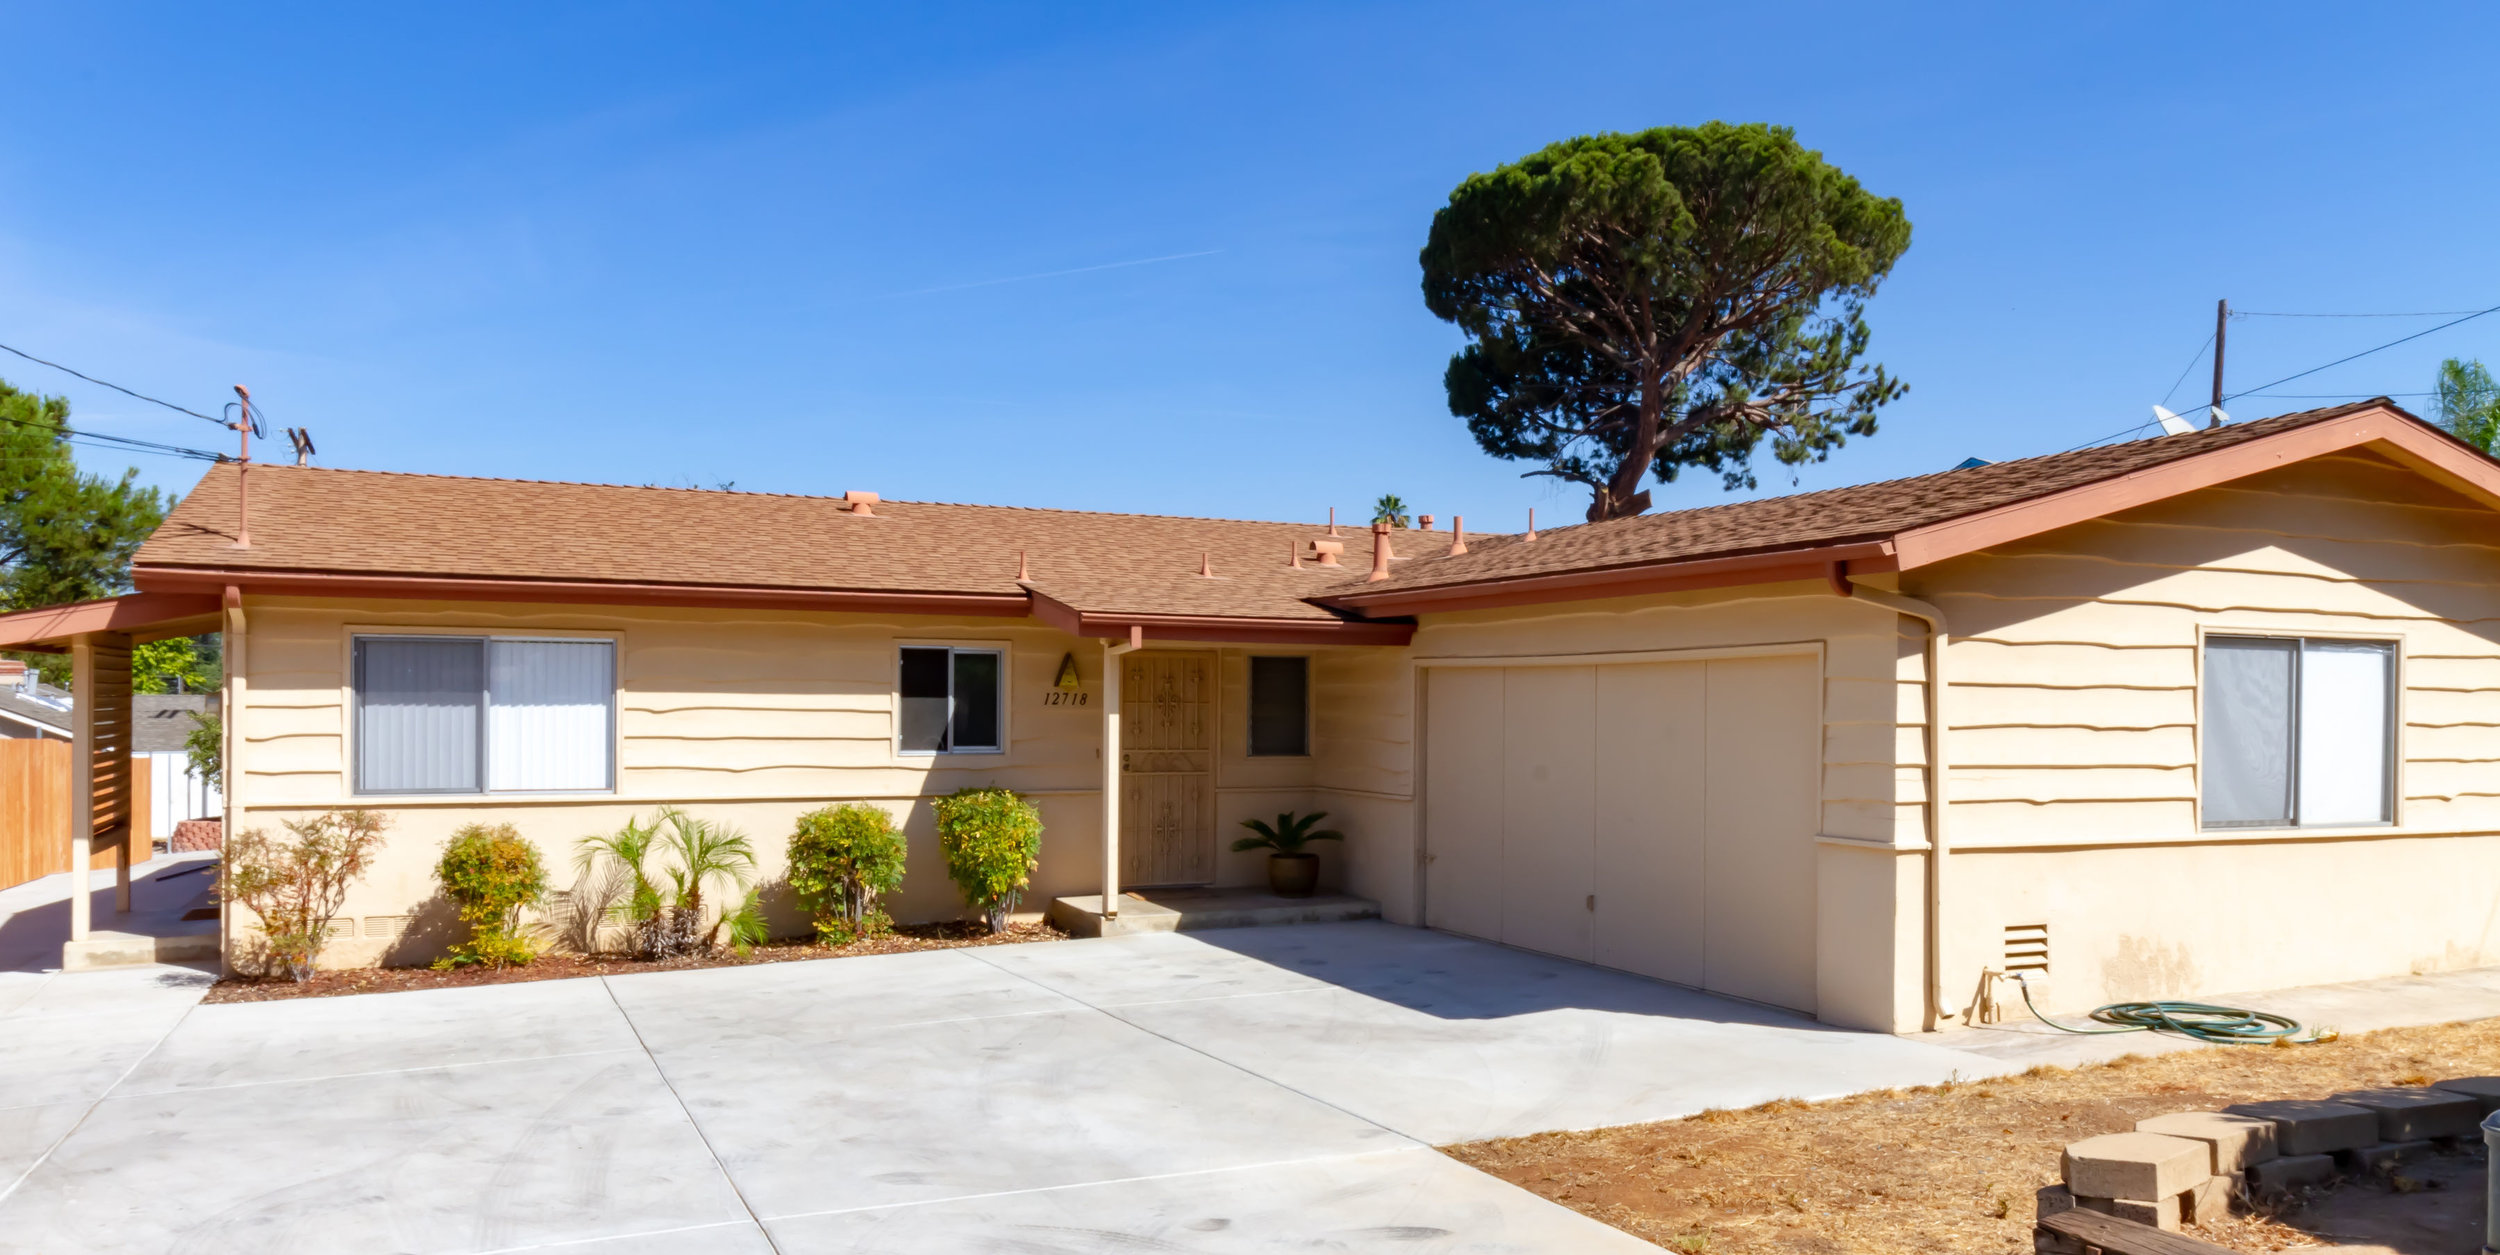 12718 Castle Court Drive, Lakeside, CA 92040 - COE: 01/15/2018Granny Flat, Pool, Hot Tub, RV Parking, Fully Remodeled Kitchen, Forced AC, Whole house fan,Large 2 Car Garage, This house has it all! Get $1,100 off your mortgage every month by the granny flat! Spacious updated 3 bed 2 bath House. Plus attached granny flat (currently renting for $ 1,100) Home features a large family room and a den plus plenty of outdoor space will let your family spread out. Granny flat is currently being rented/occupied for 1,100. House is vacant. Call co-listing agent for more info. Please don't disturb the granny flat tenant.